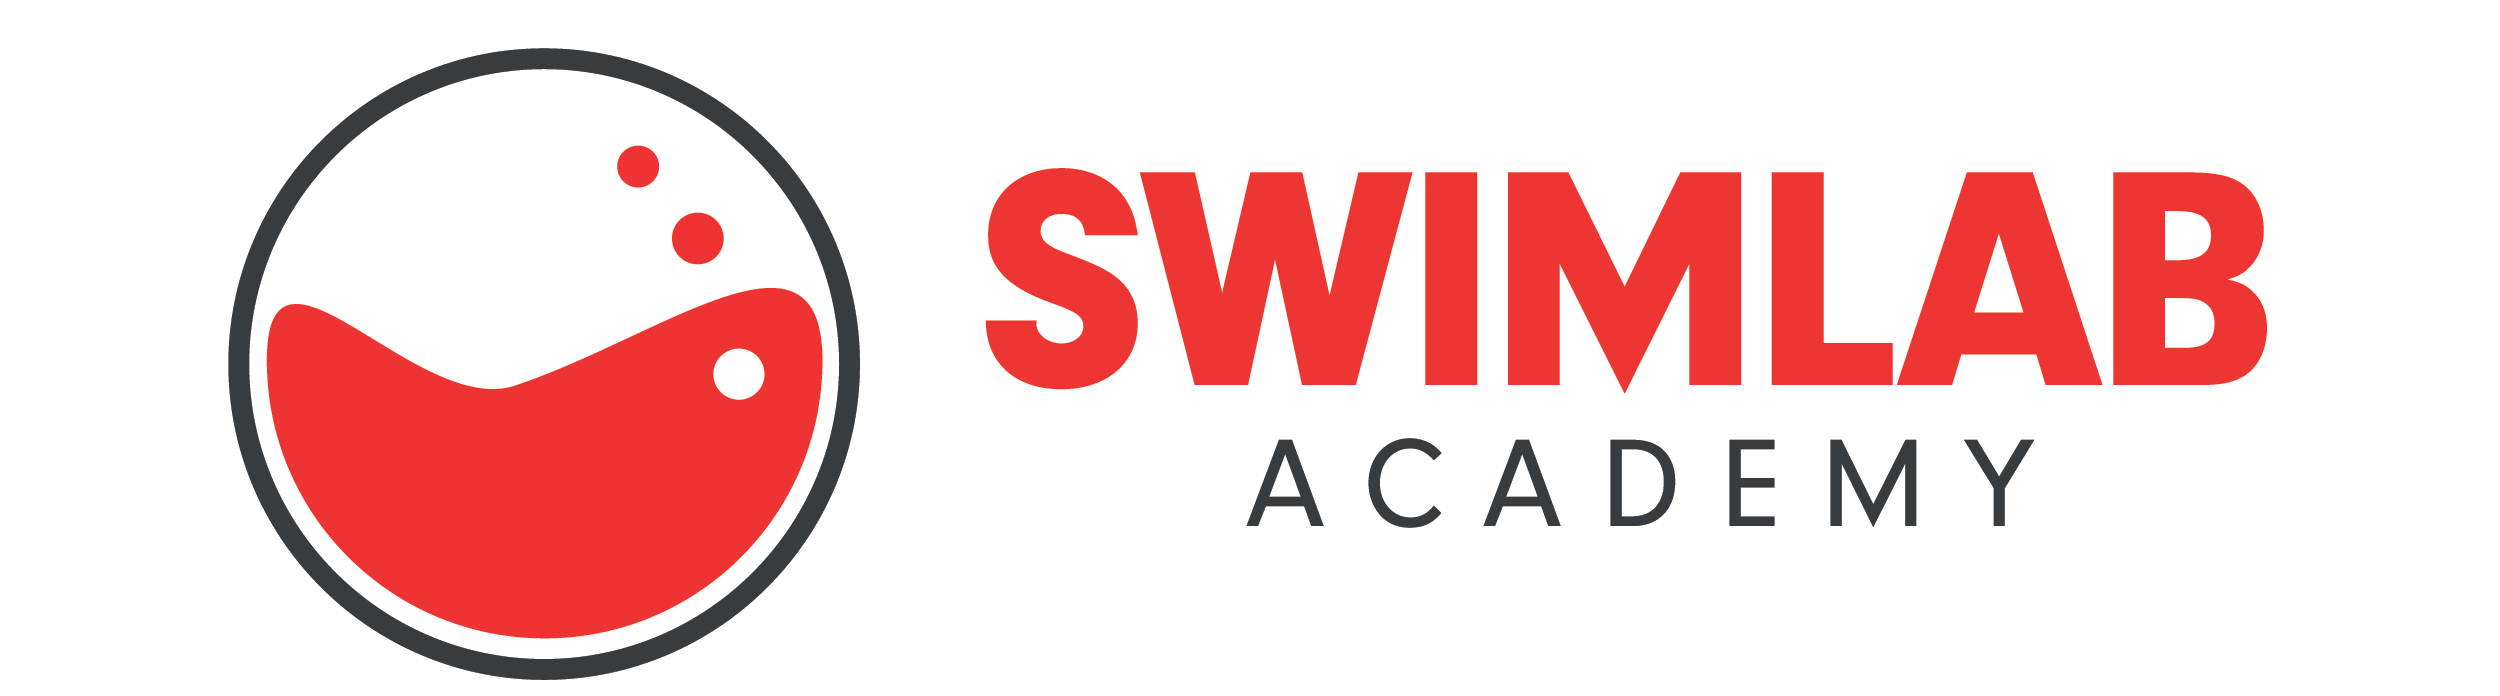 SWIM LAB ACADEMY